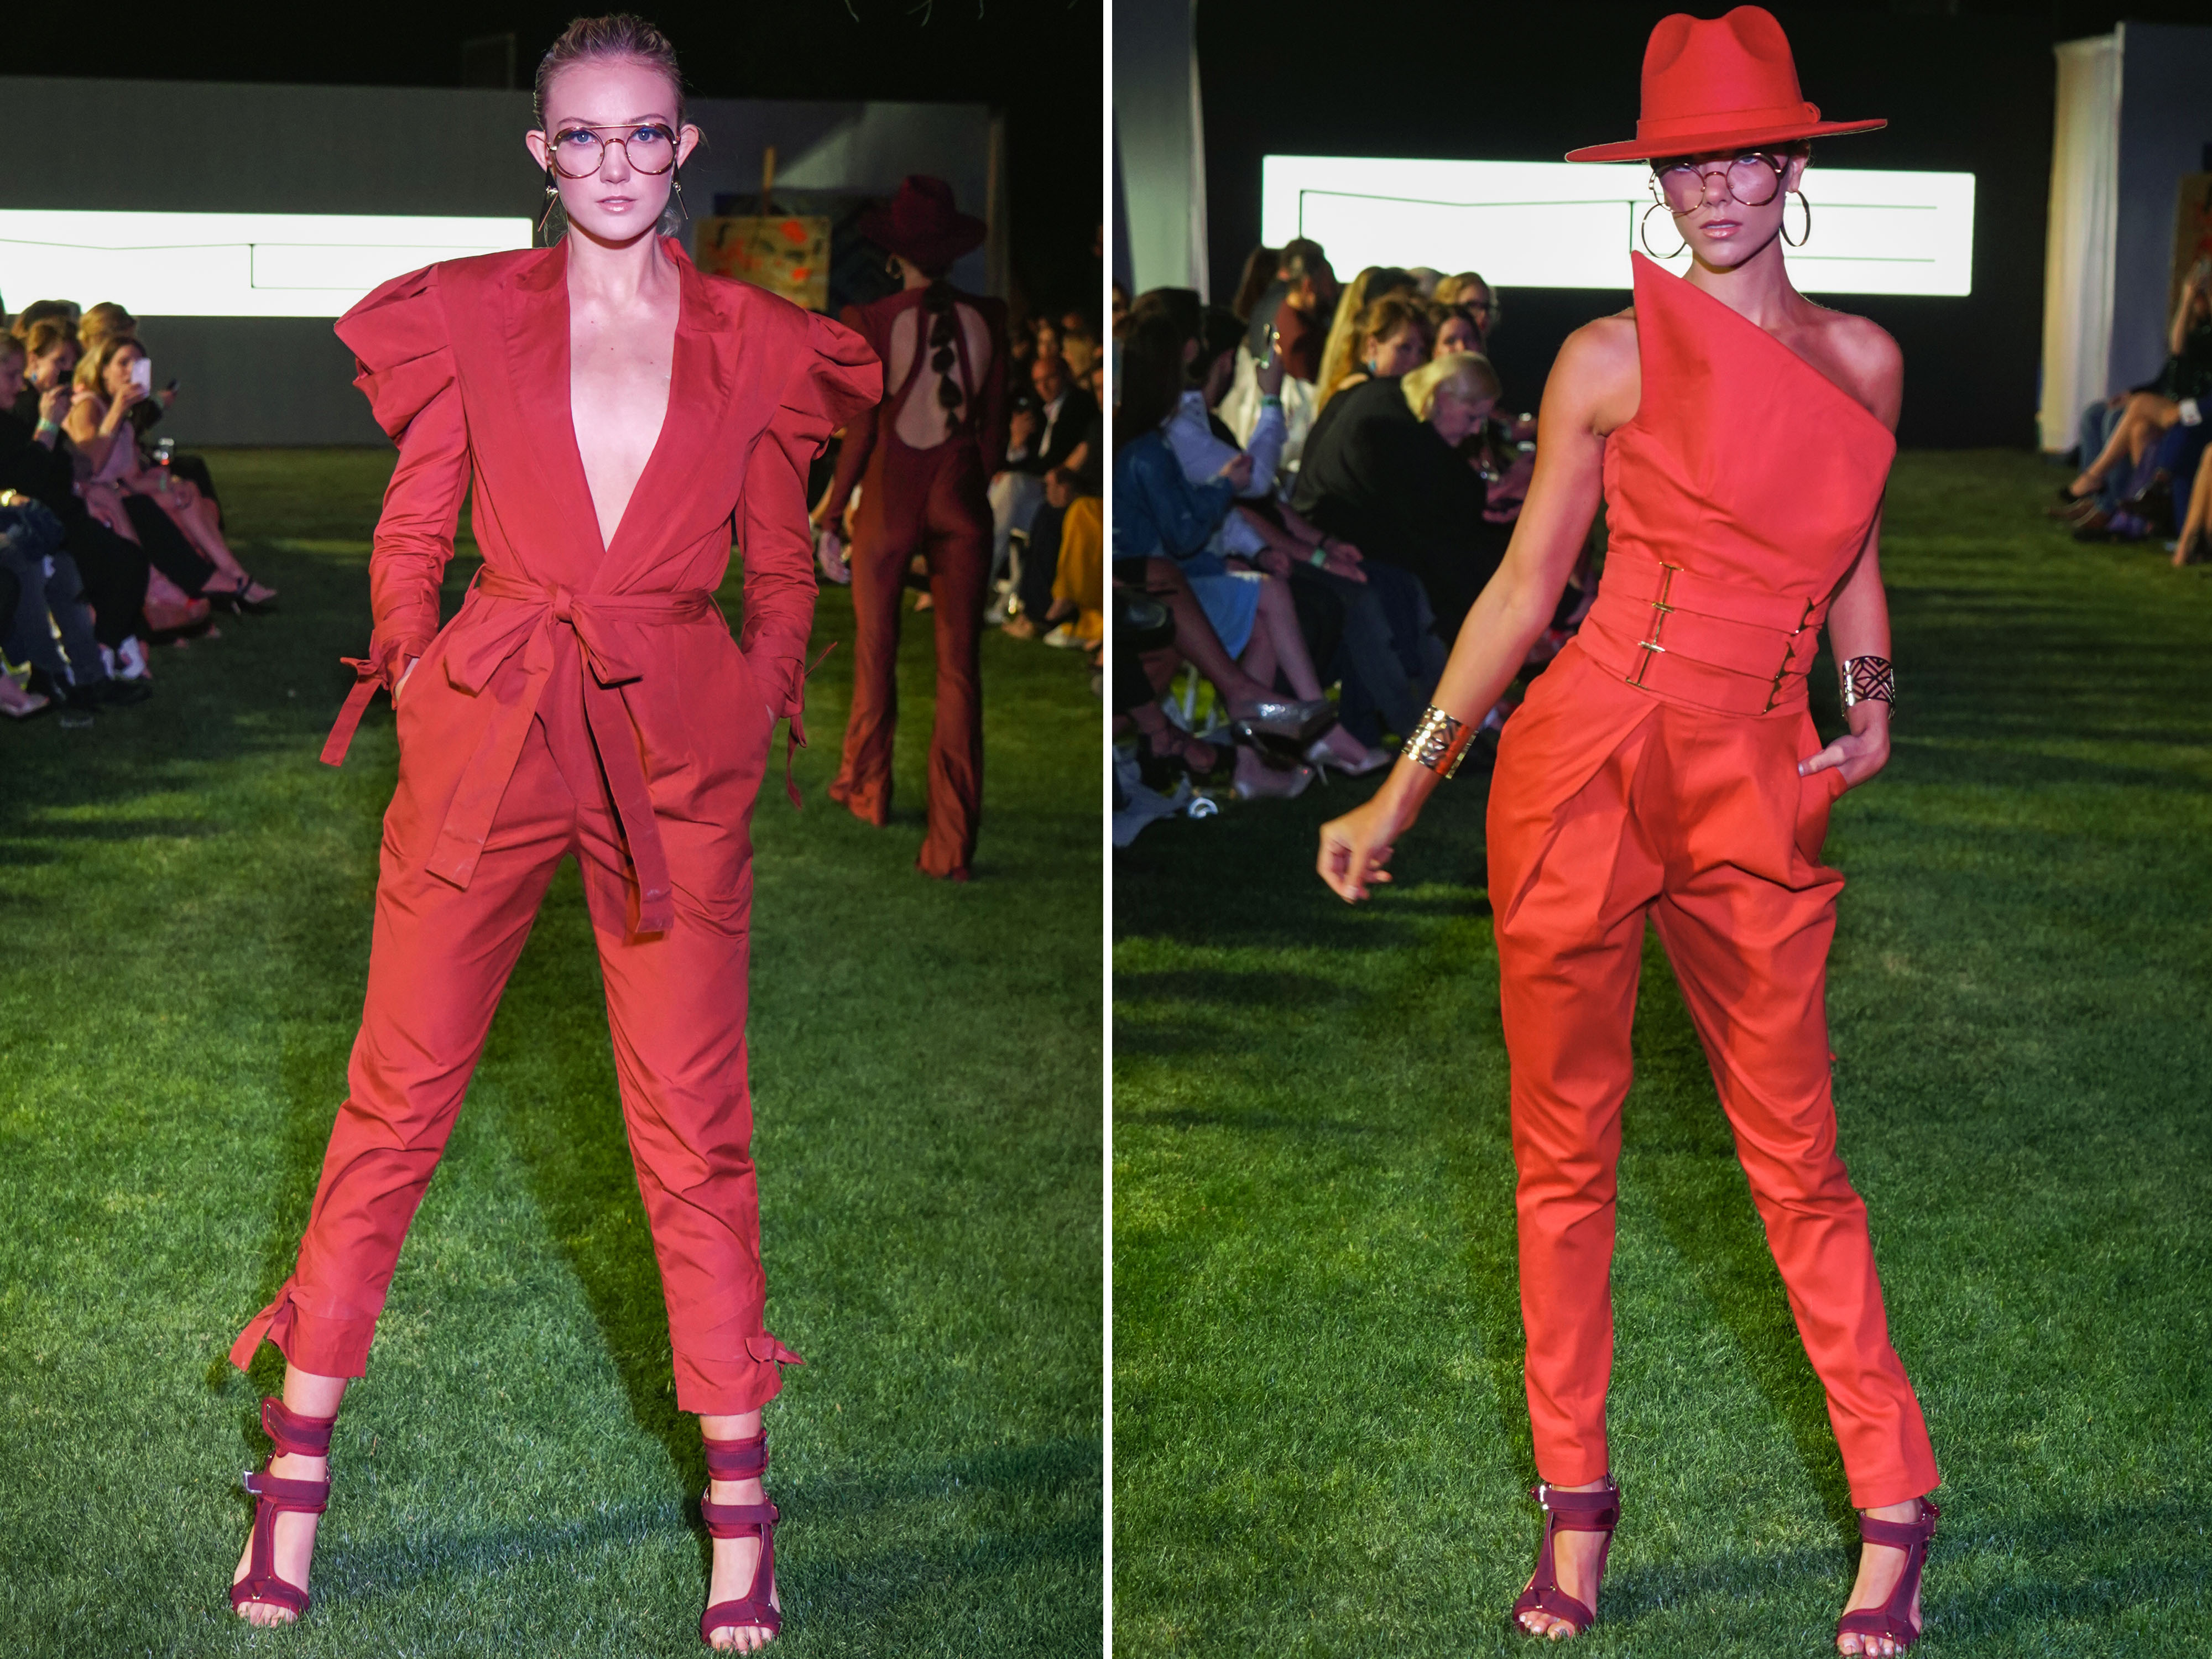 Michael Costello Presents Spring Summer 2019 Collection The Red Book